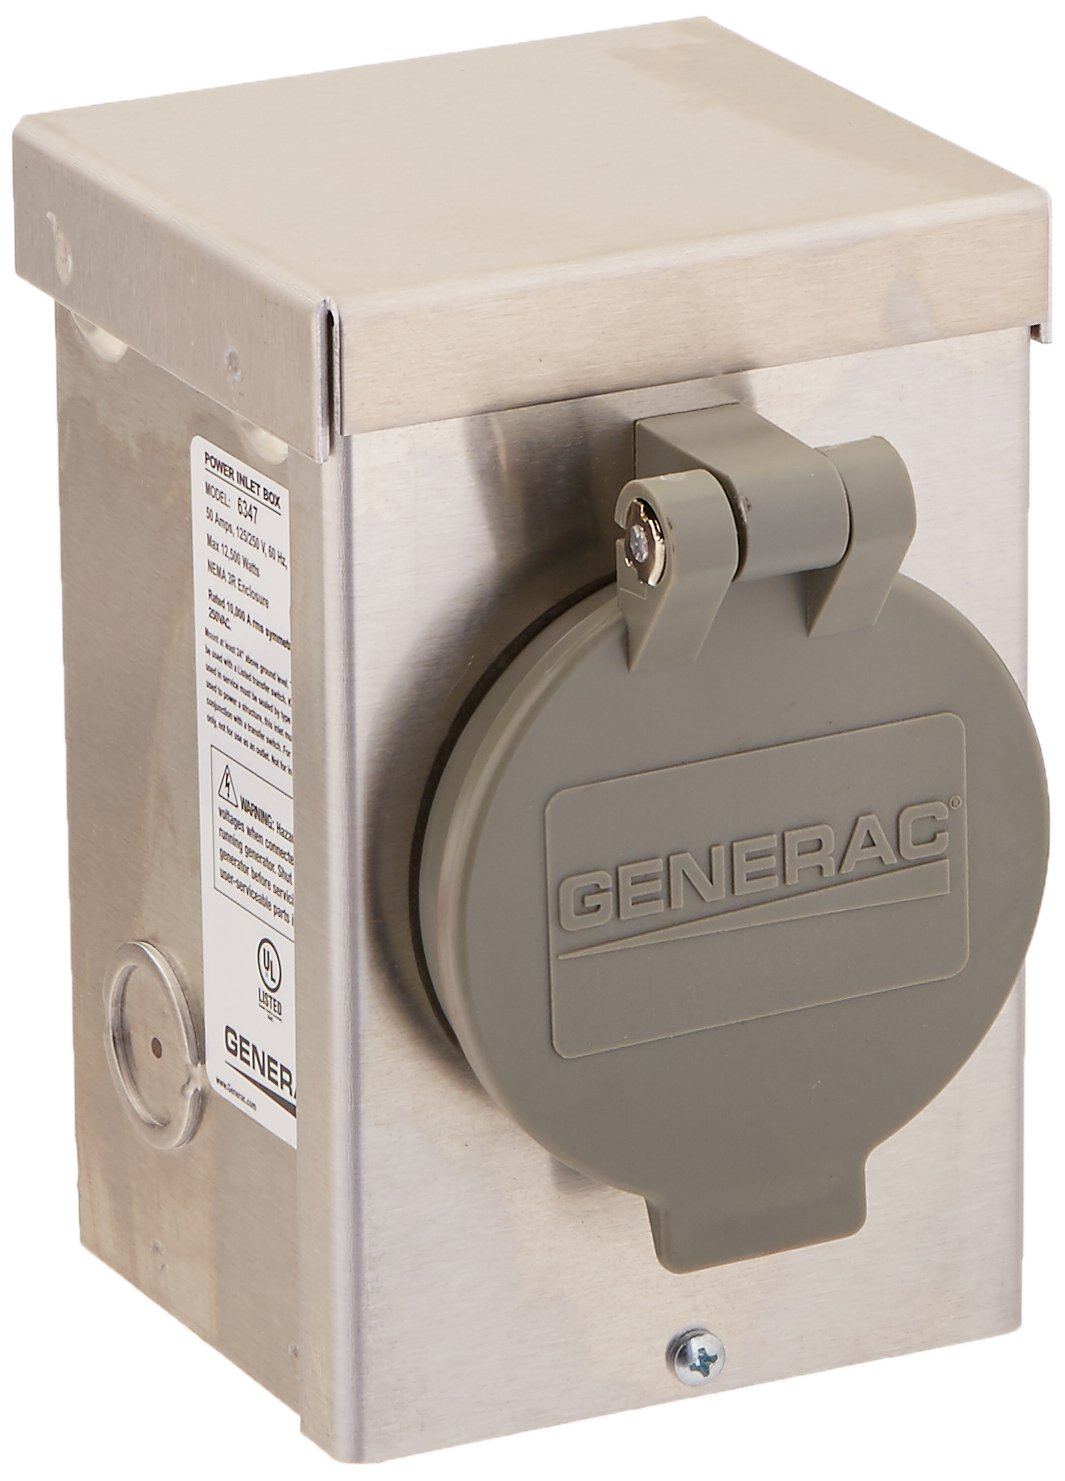 Generac 6347 50-Amp 125/250V Aluminum Power Inlet Box with Spring-Loaded Flip Lid by Generac